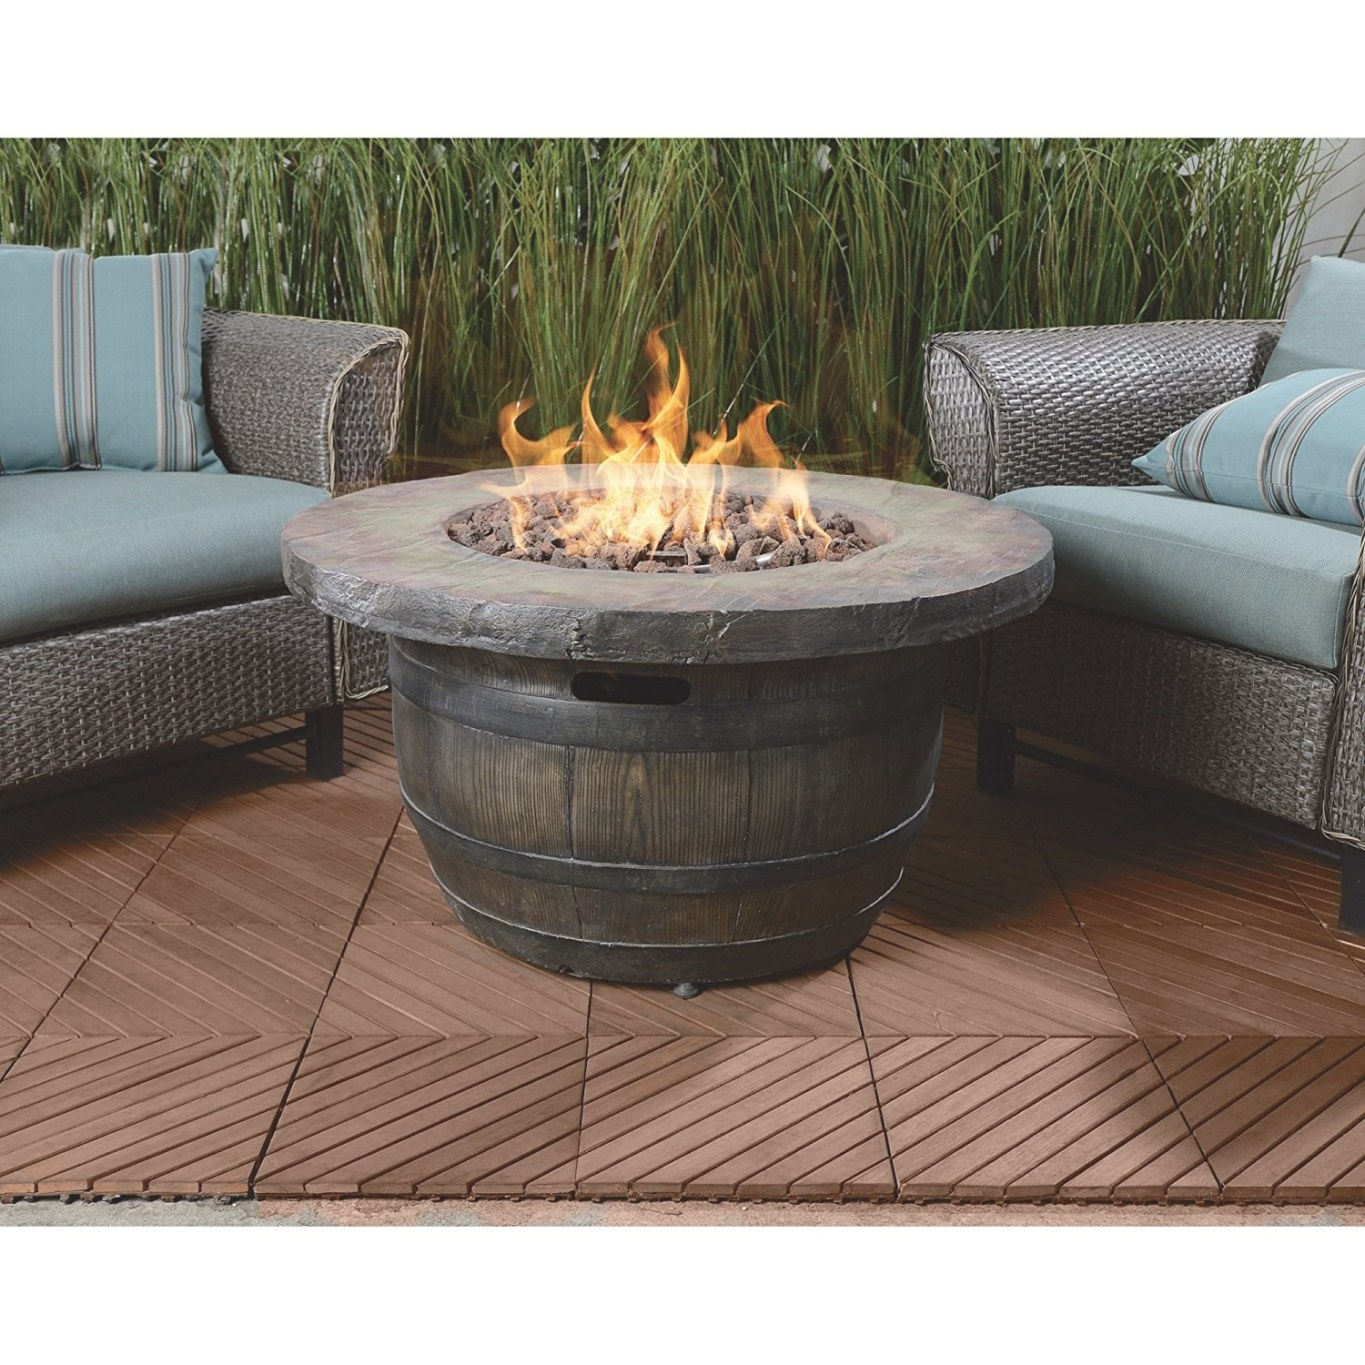 Best Fire Pit Of 2018 | Reviews And Analysisexpert with Propane Fire Pit Table